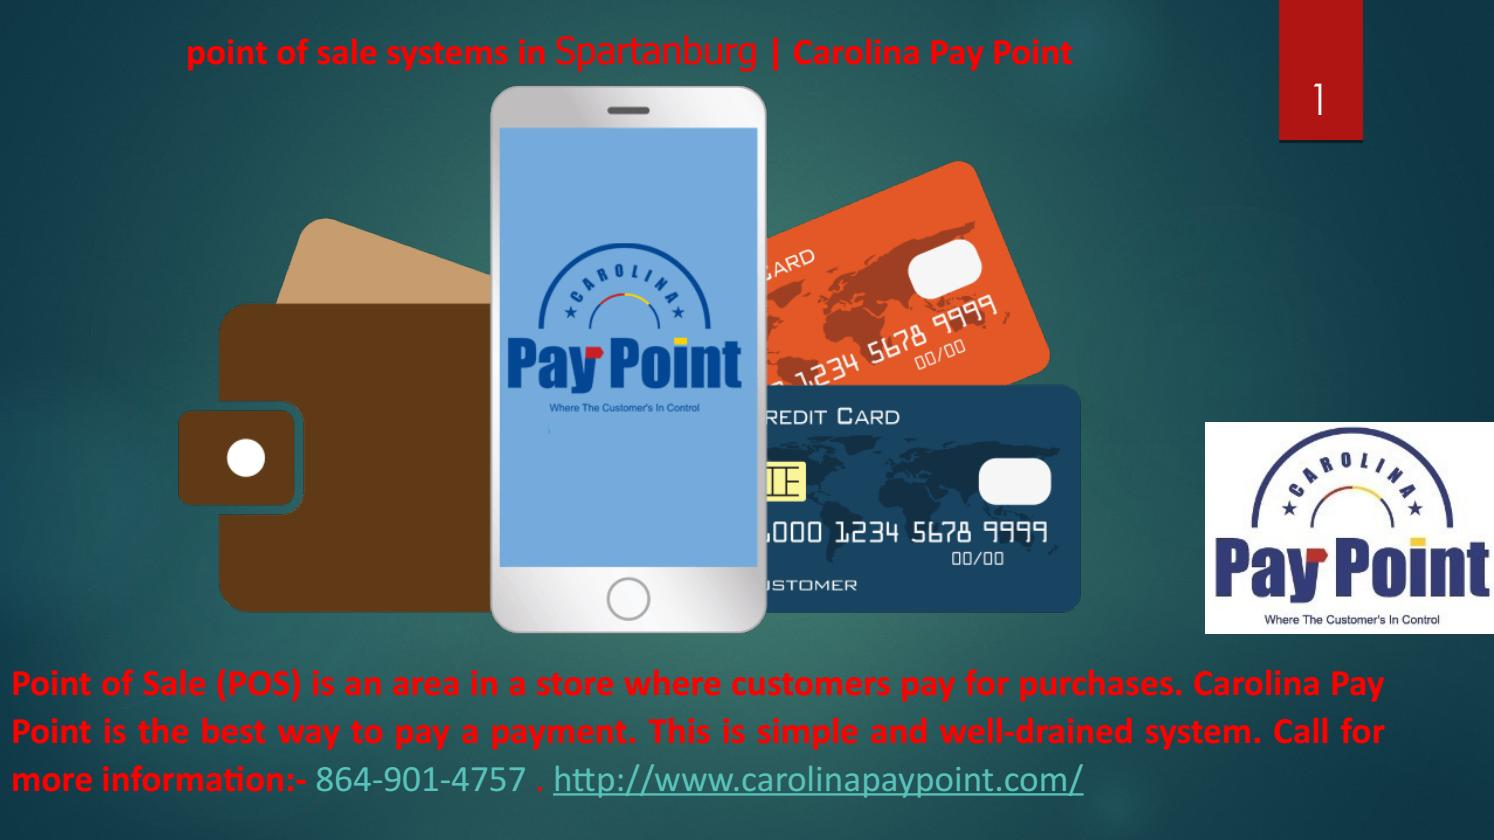 point of sale systems in Spartanburg | Carolina Pay Point by